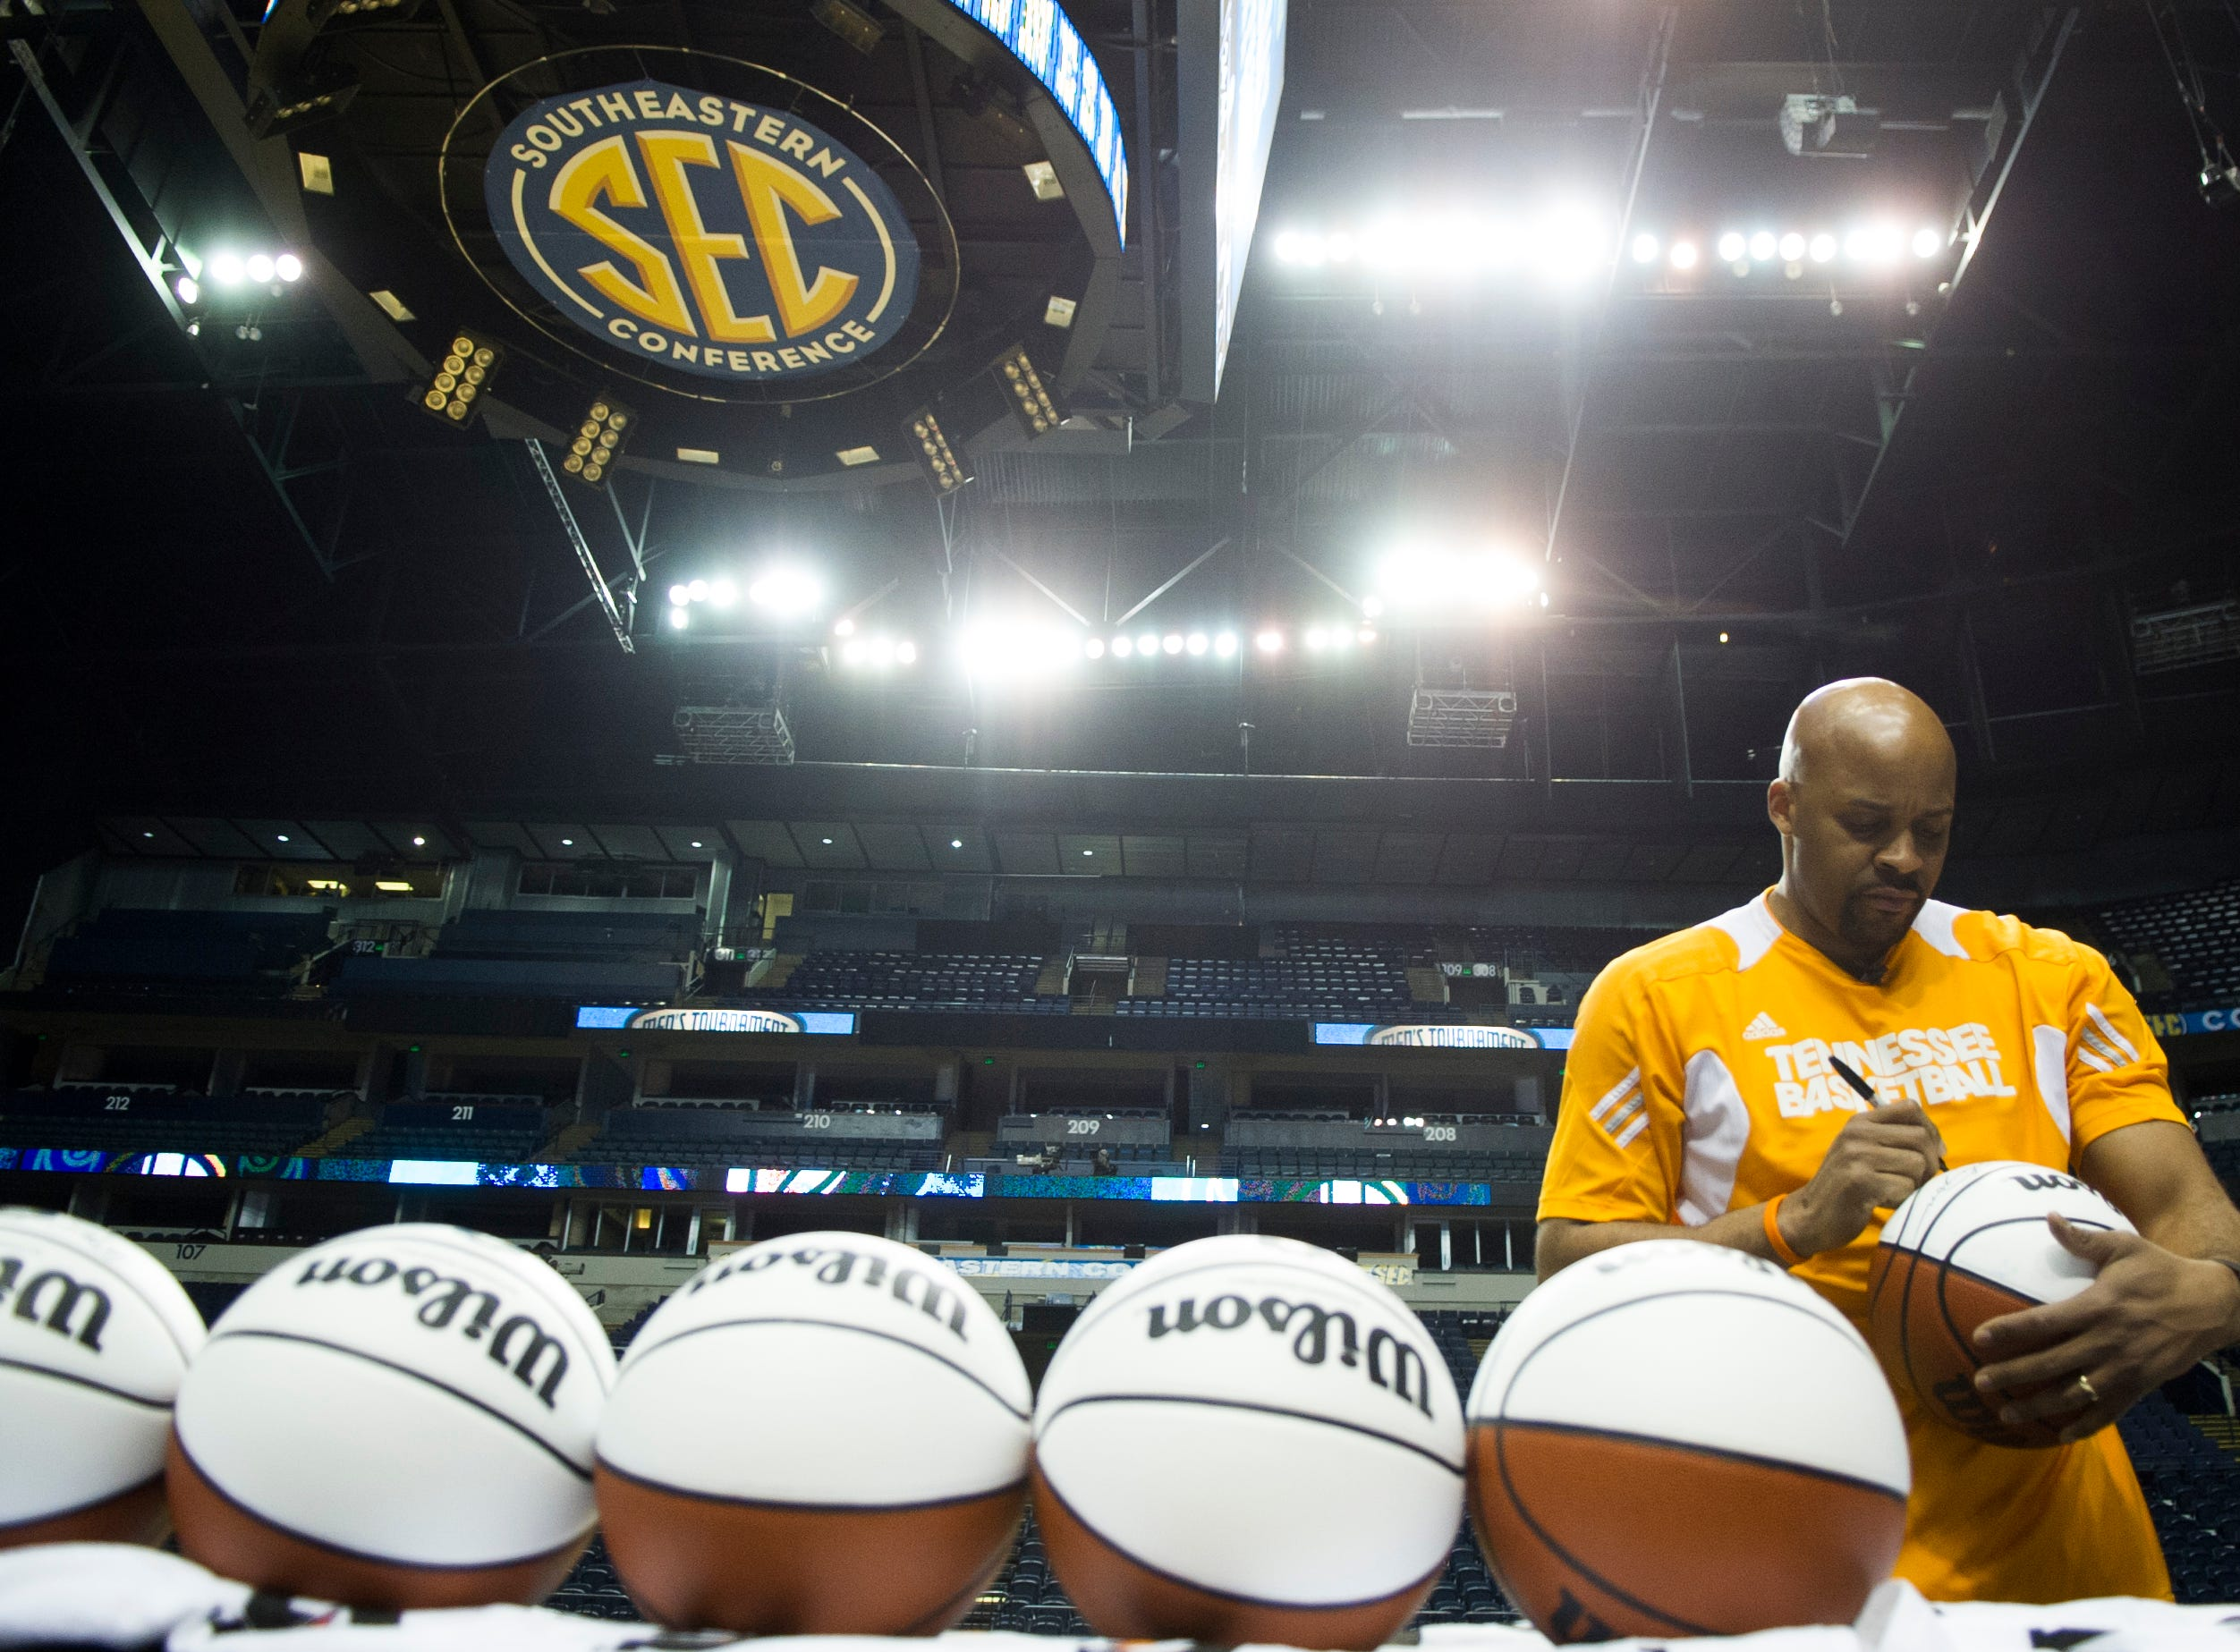 Tennessee head coach Cuonzo Martin signs basketballs during practice before the 2013 SEC Men's Basketball Tournament at Bridgestone Arena in Nashville Wednesday, March 13, 2013. Tennessee will play the winner of the Mississippi State and South Carolina Game which takes place Wednesday evening.